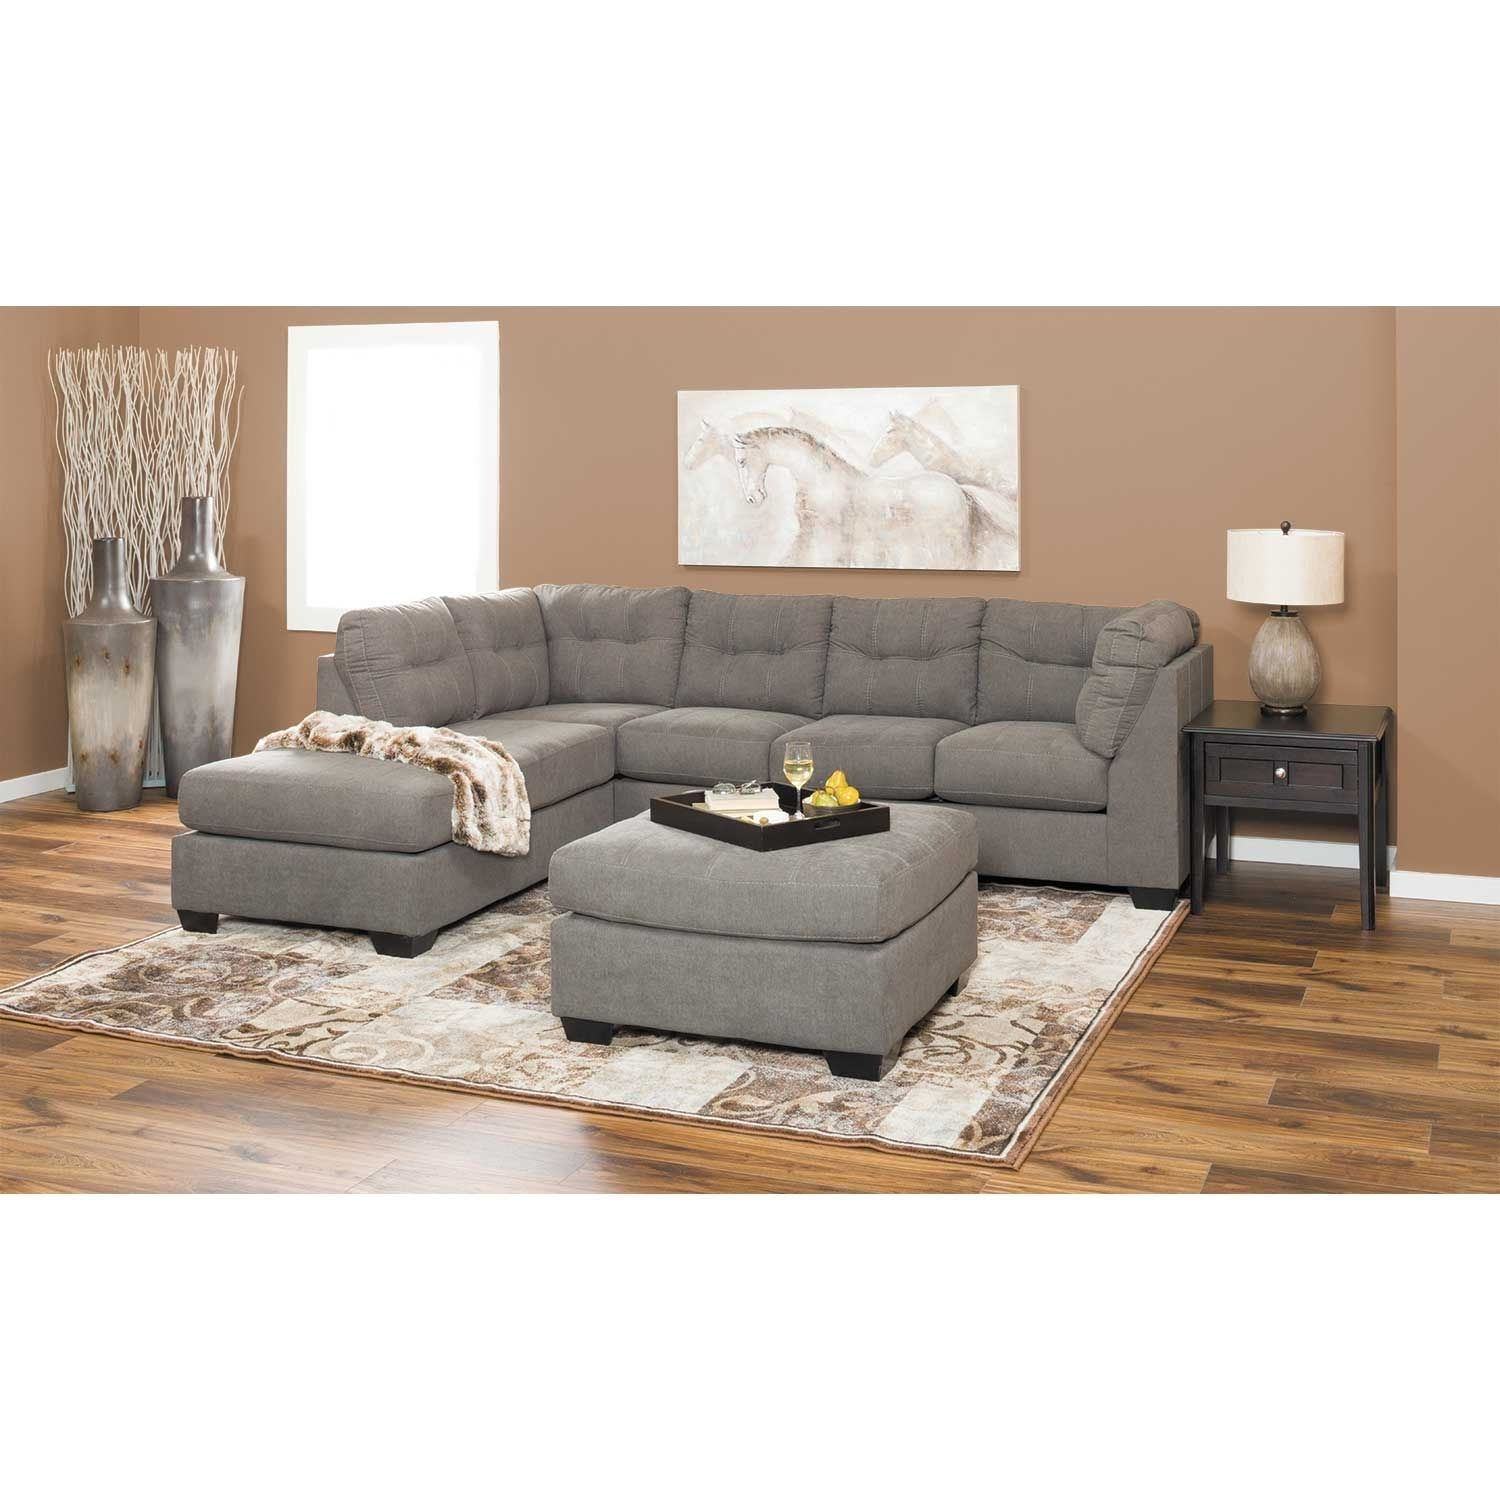 Maier Charcoal 2 Piece Sectional With Laf Chaise | 4520016/67 intended for Arrowmask 2 Piece Sectionals With Laf Chaise (Image 18 of 30)